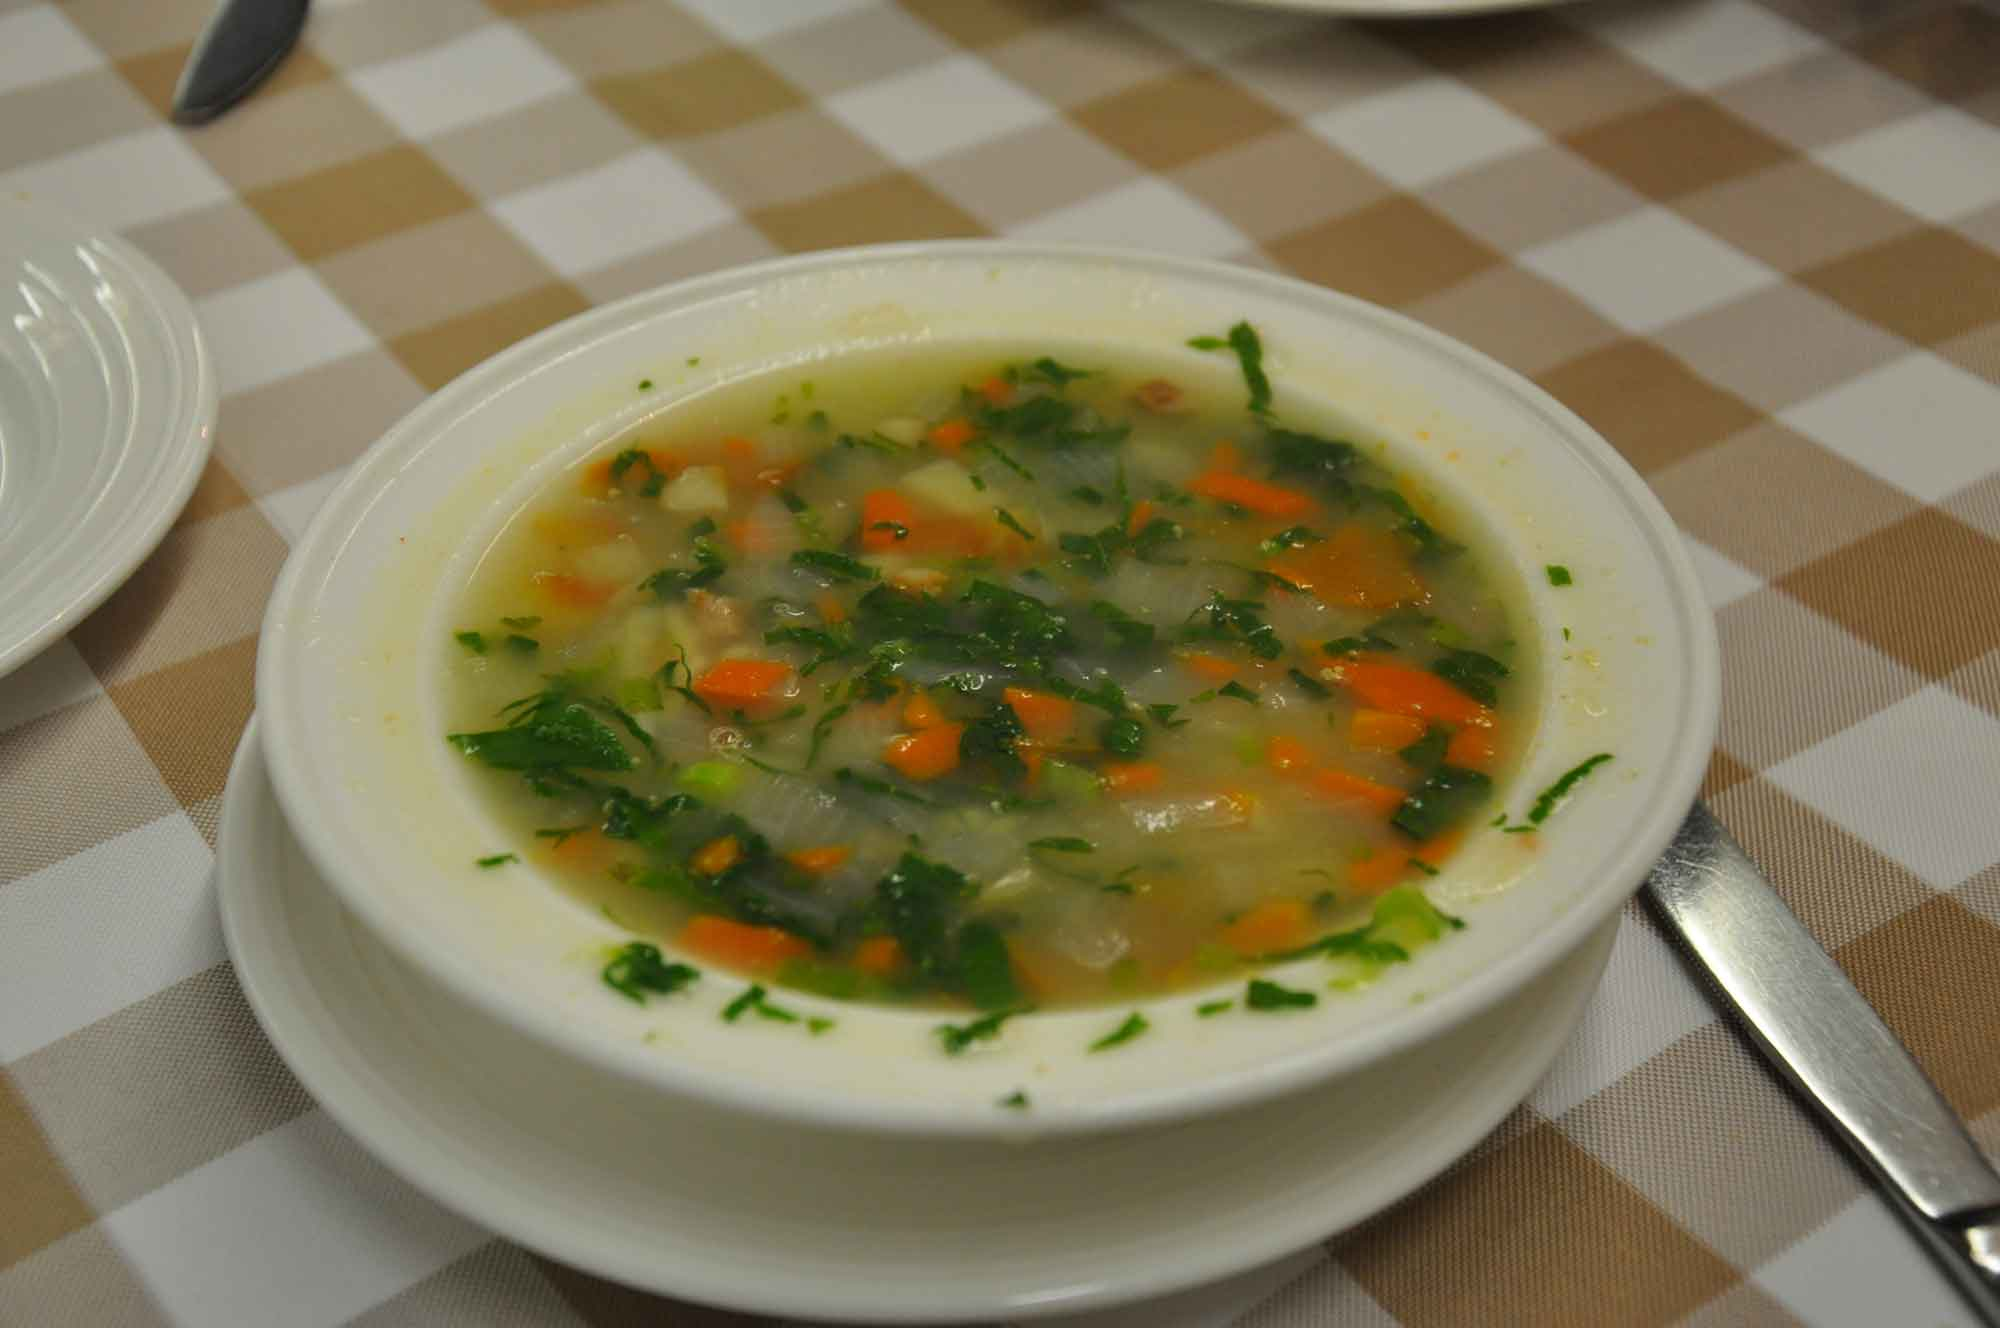 A Lorcha Macau vegetable soup